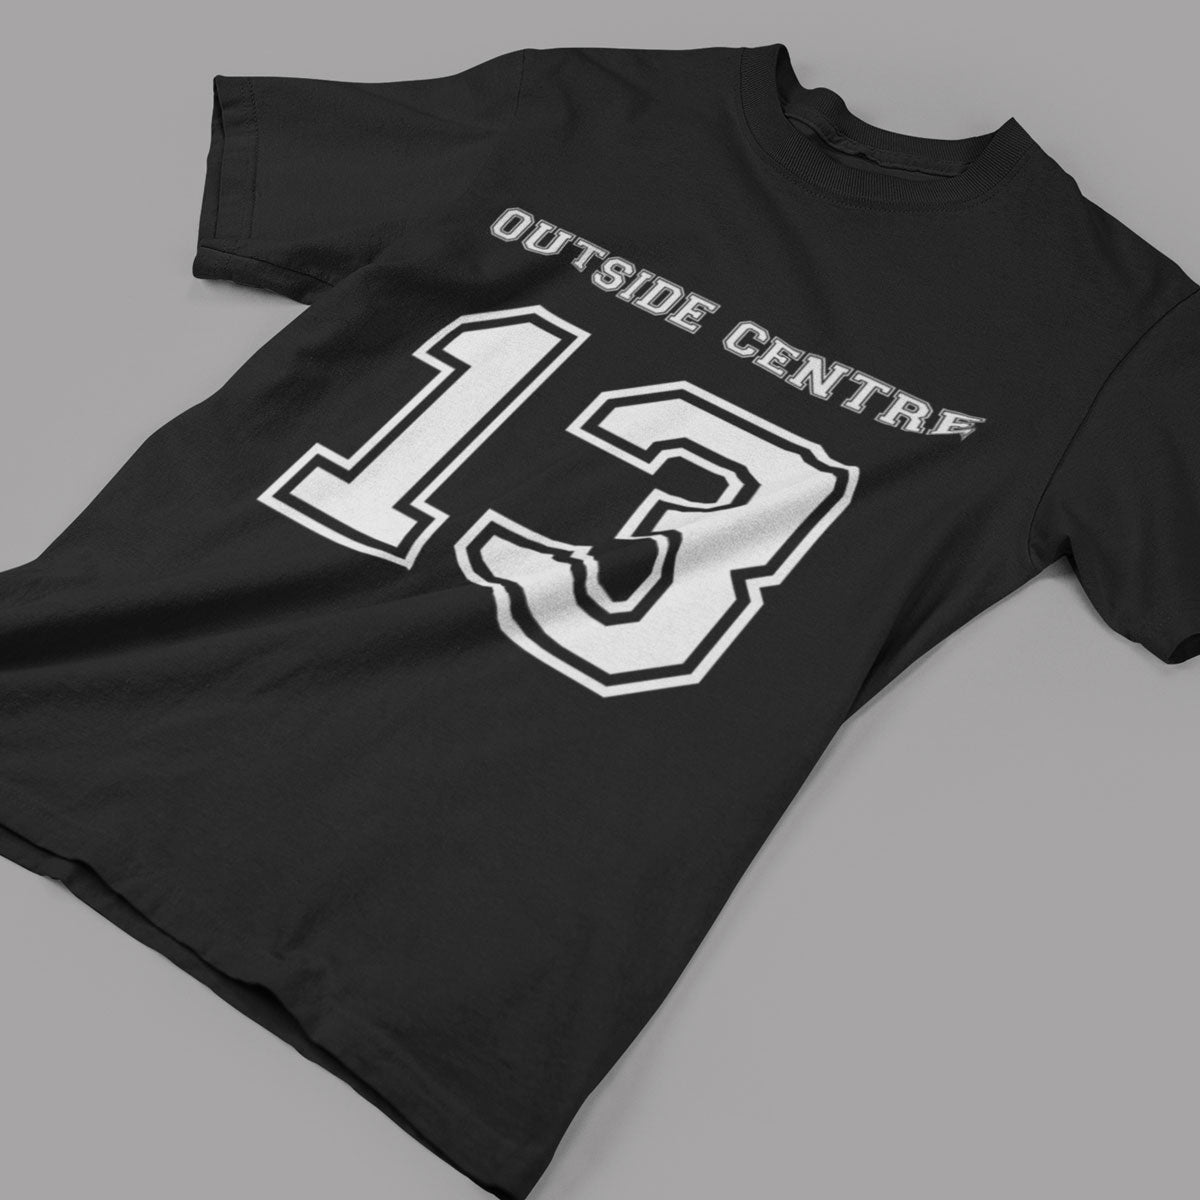 Outside Centre Number 13 Rugby Tee - First XV rugbystuff.com